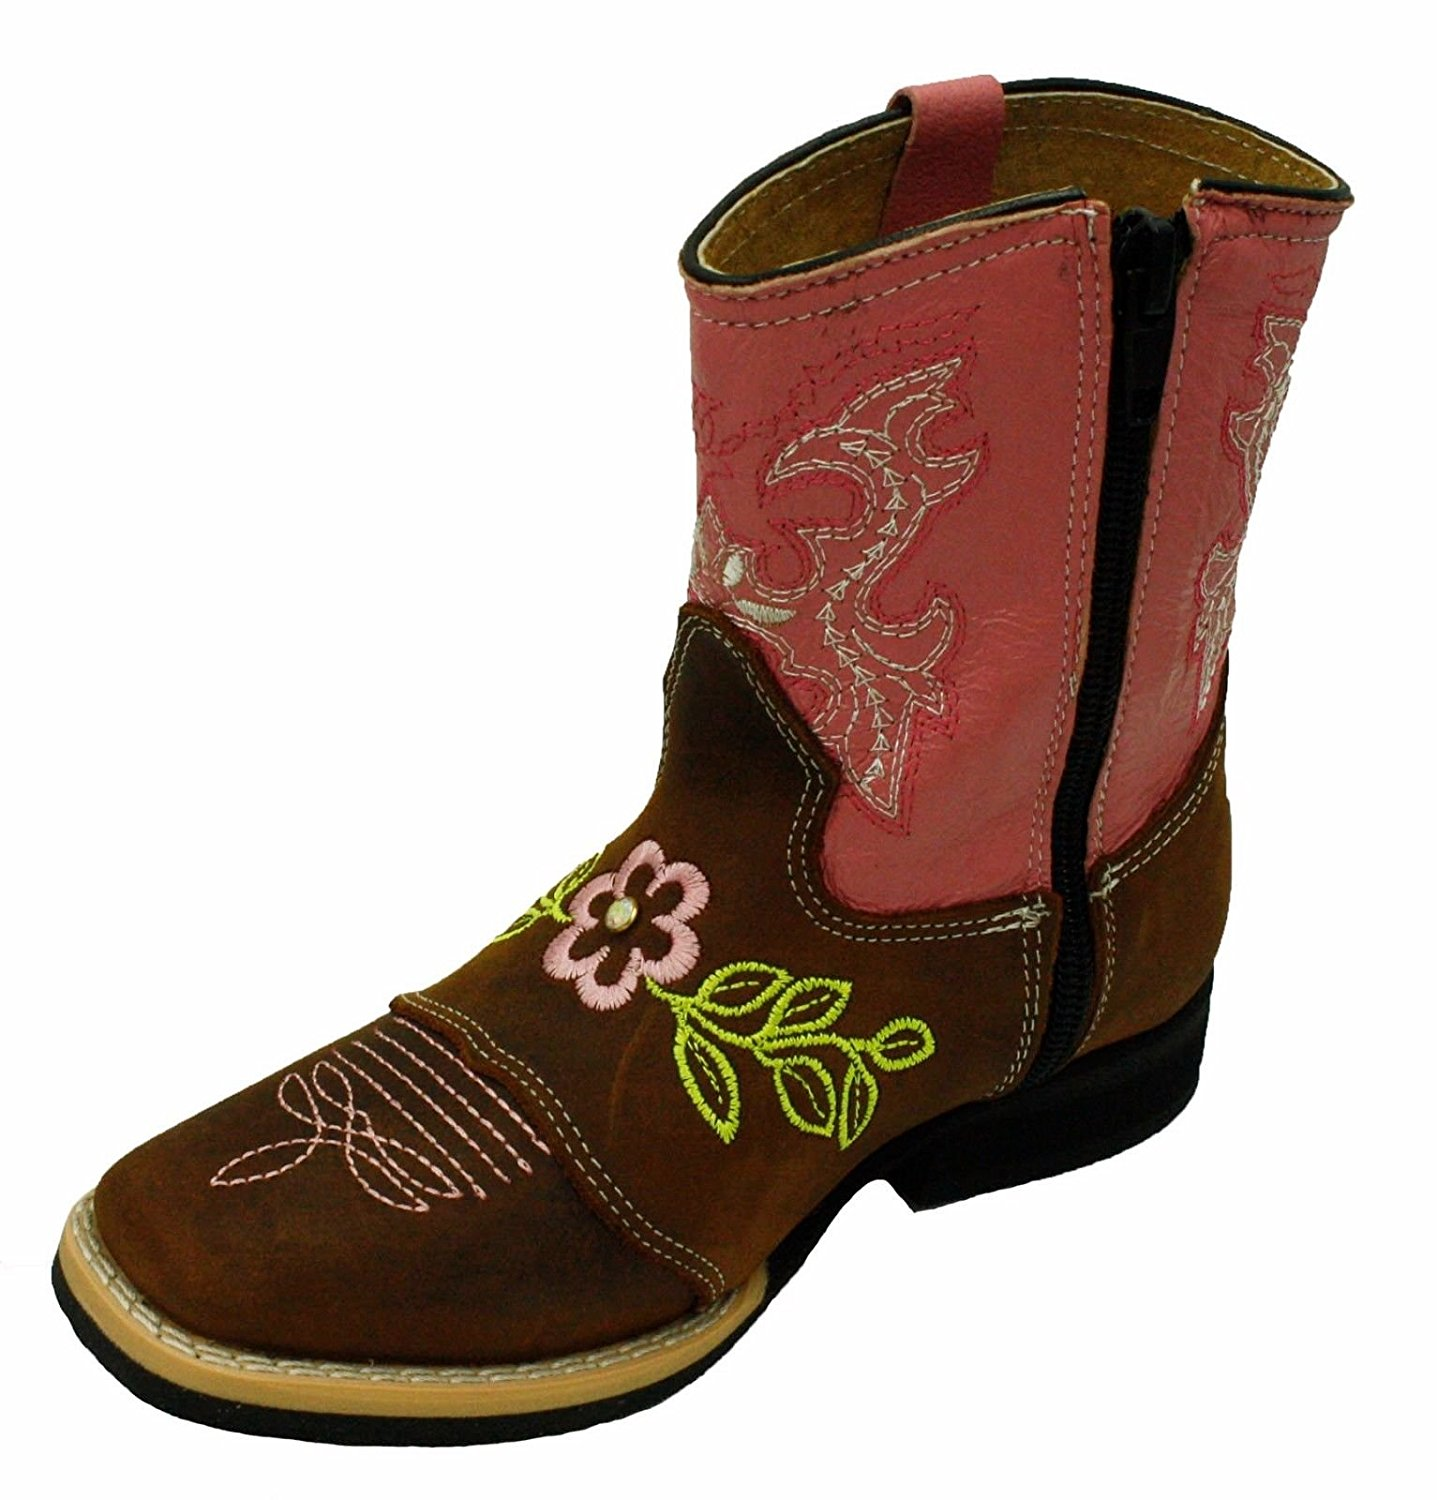 572226284d8 Cheap Western Cowboy Boots For Kids, find Western Cowboy Boots For ...